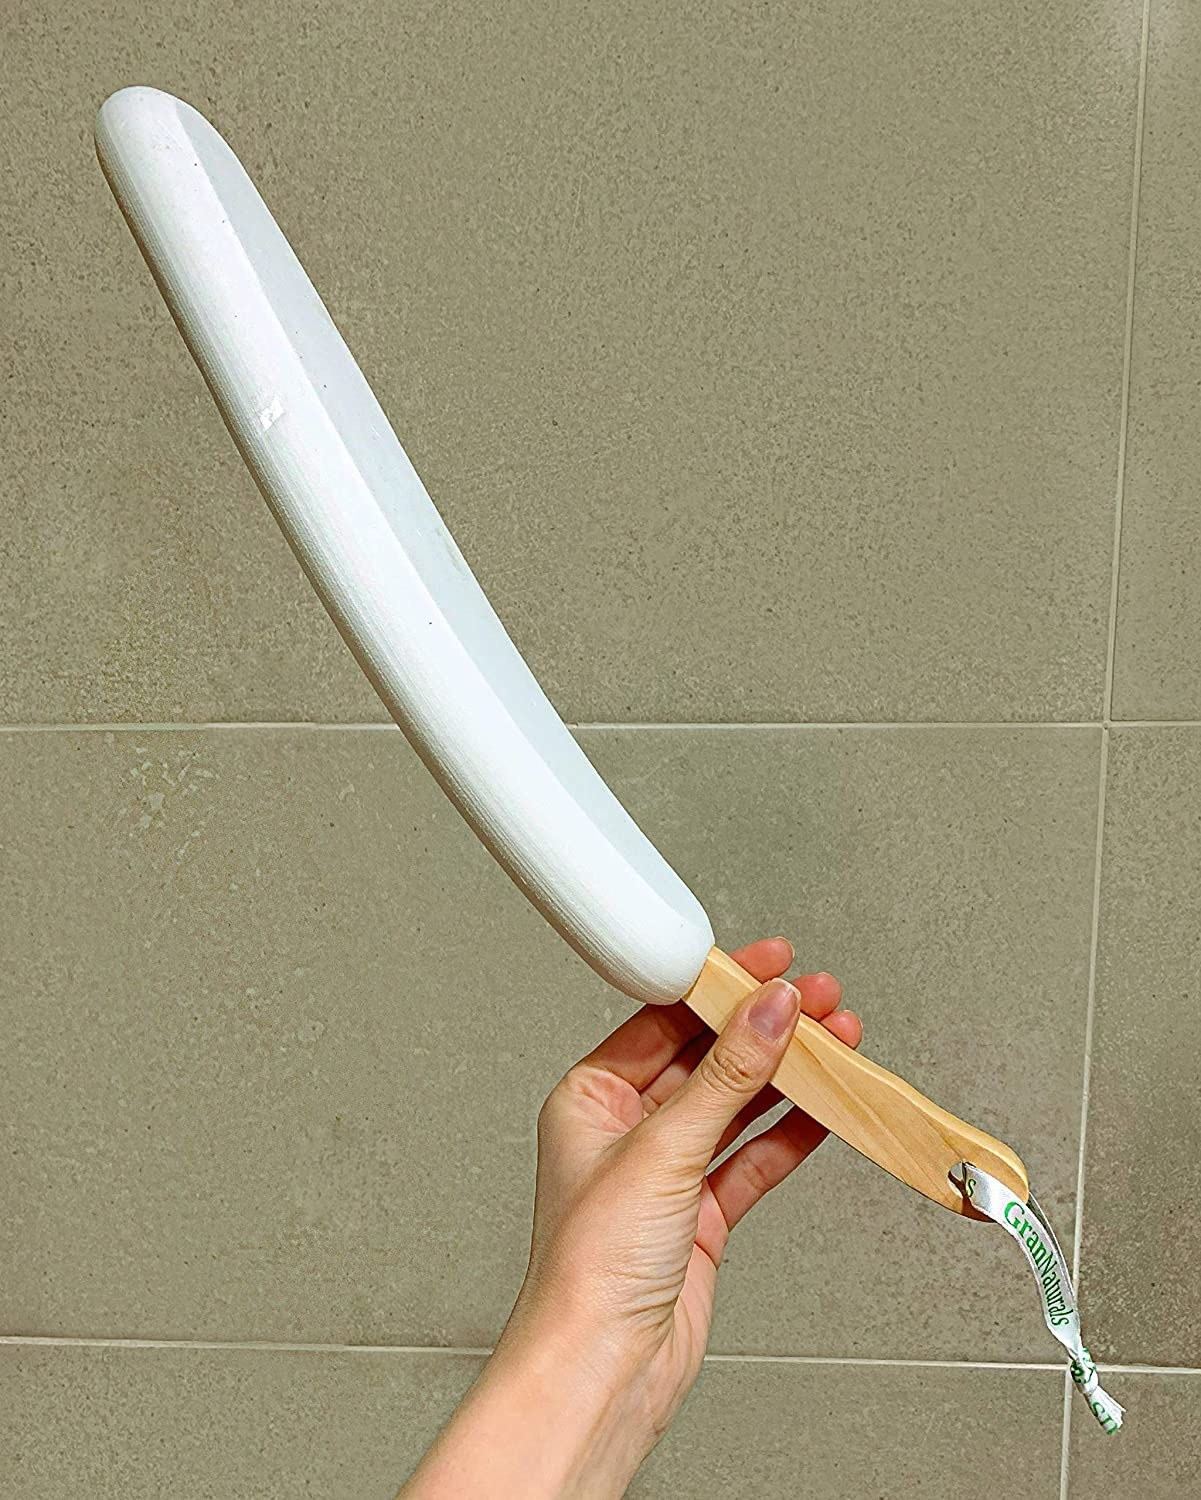 A person holds up the long curved lotion applicator